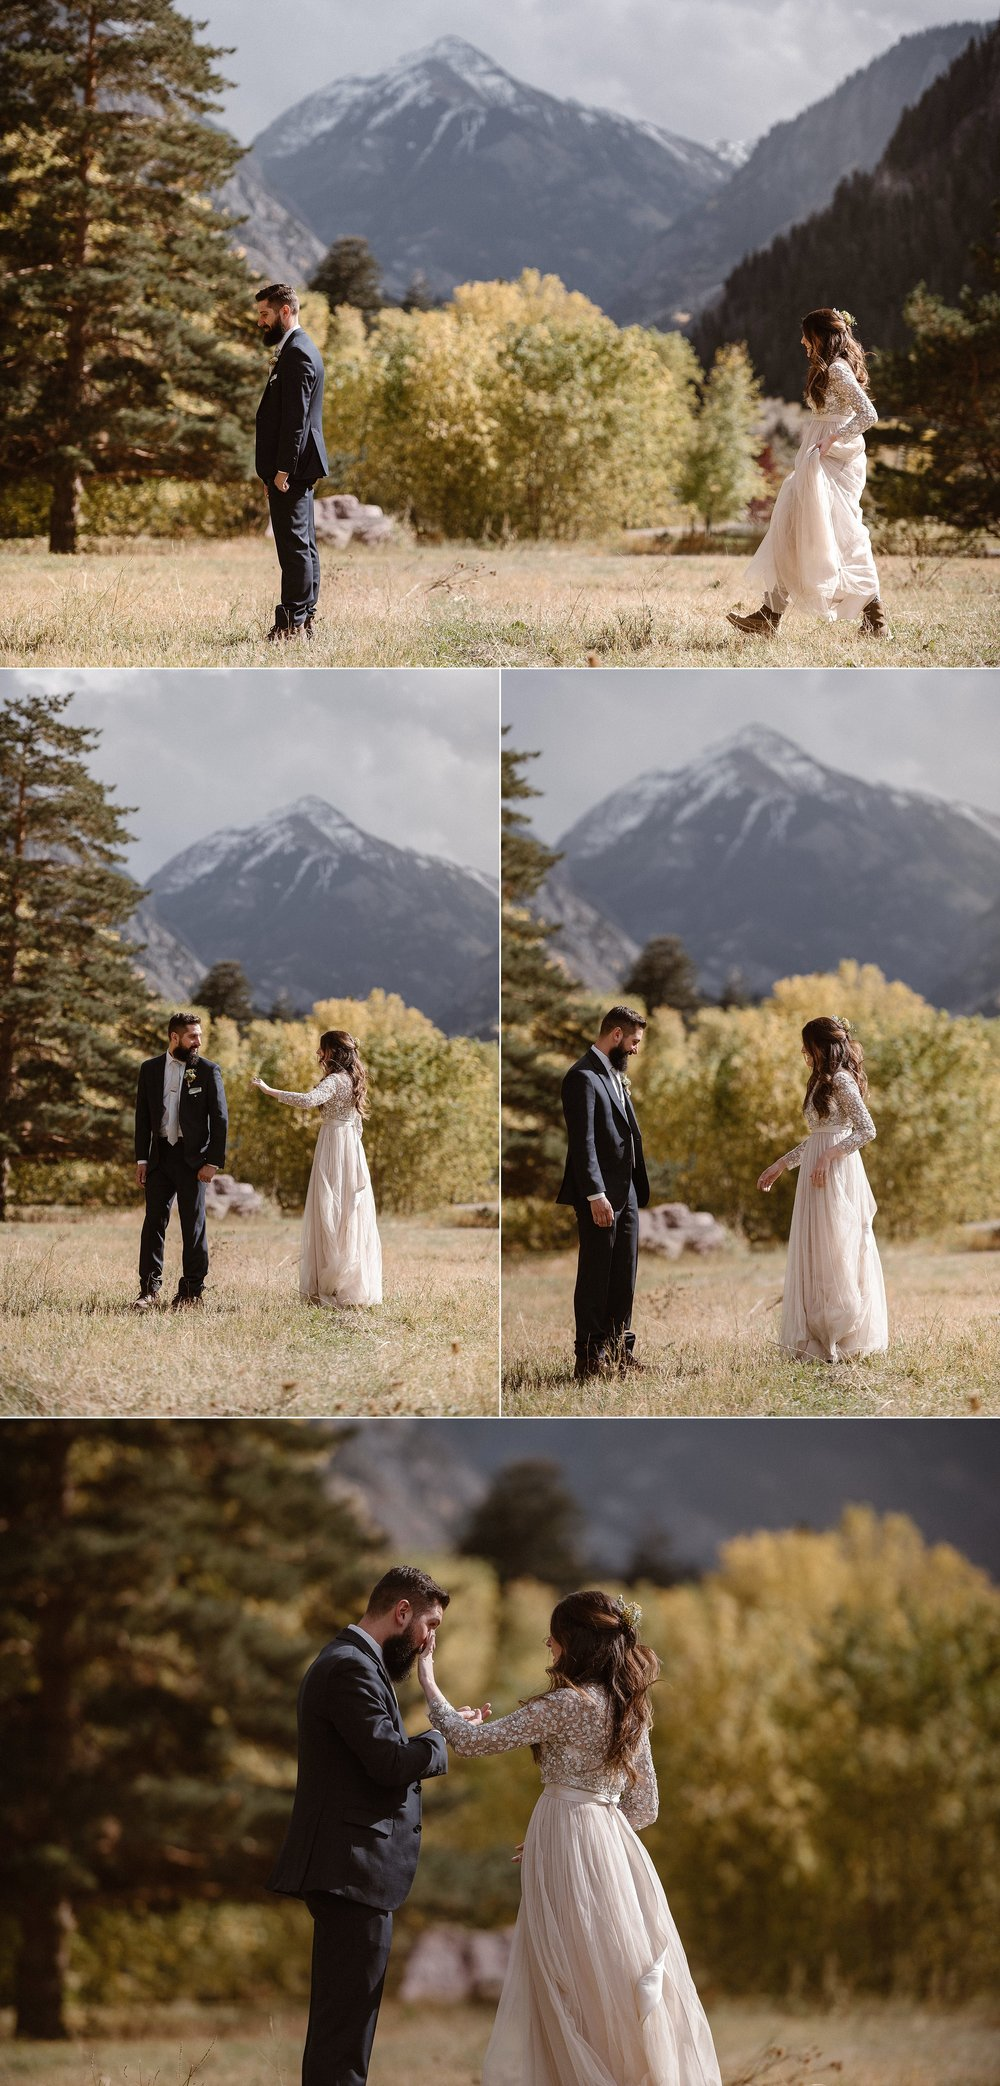 With the afternoon sun at their backs, Jen made her way to her patient groom, ready to finally see him for the first time on their wedding day. This adventurous couple opted for an all day hike through Yankee Boy Basin with their intimate elopement photographer Maddie Mae so they could share their vows in private among the mountains.